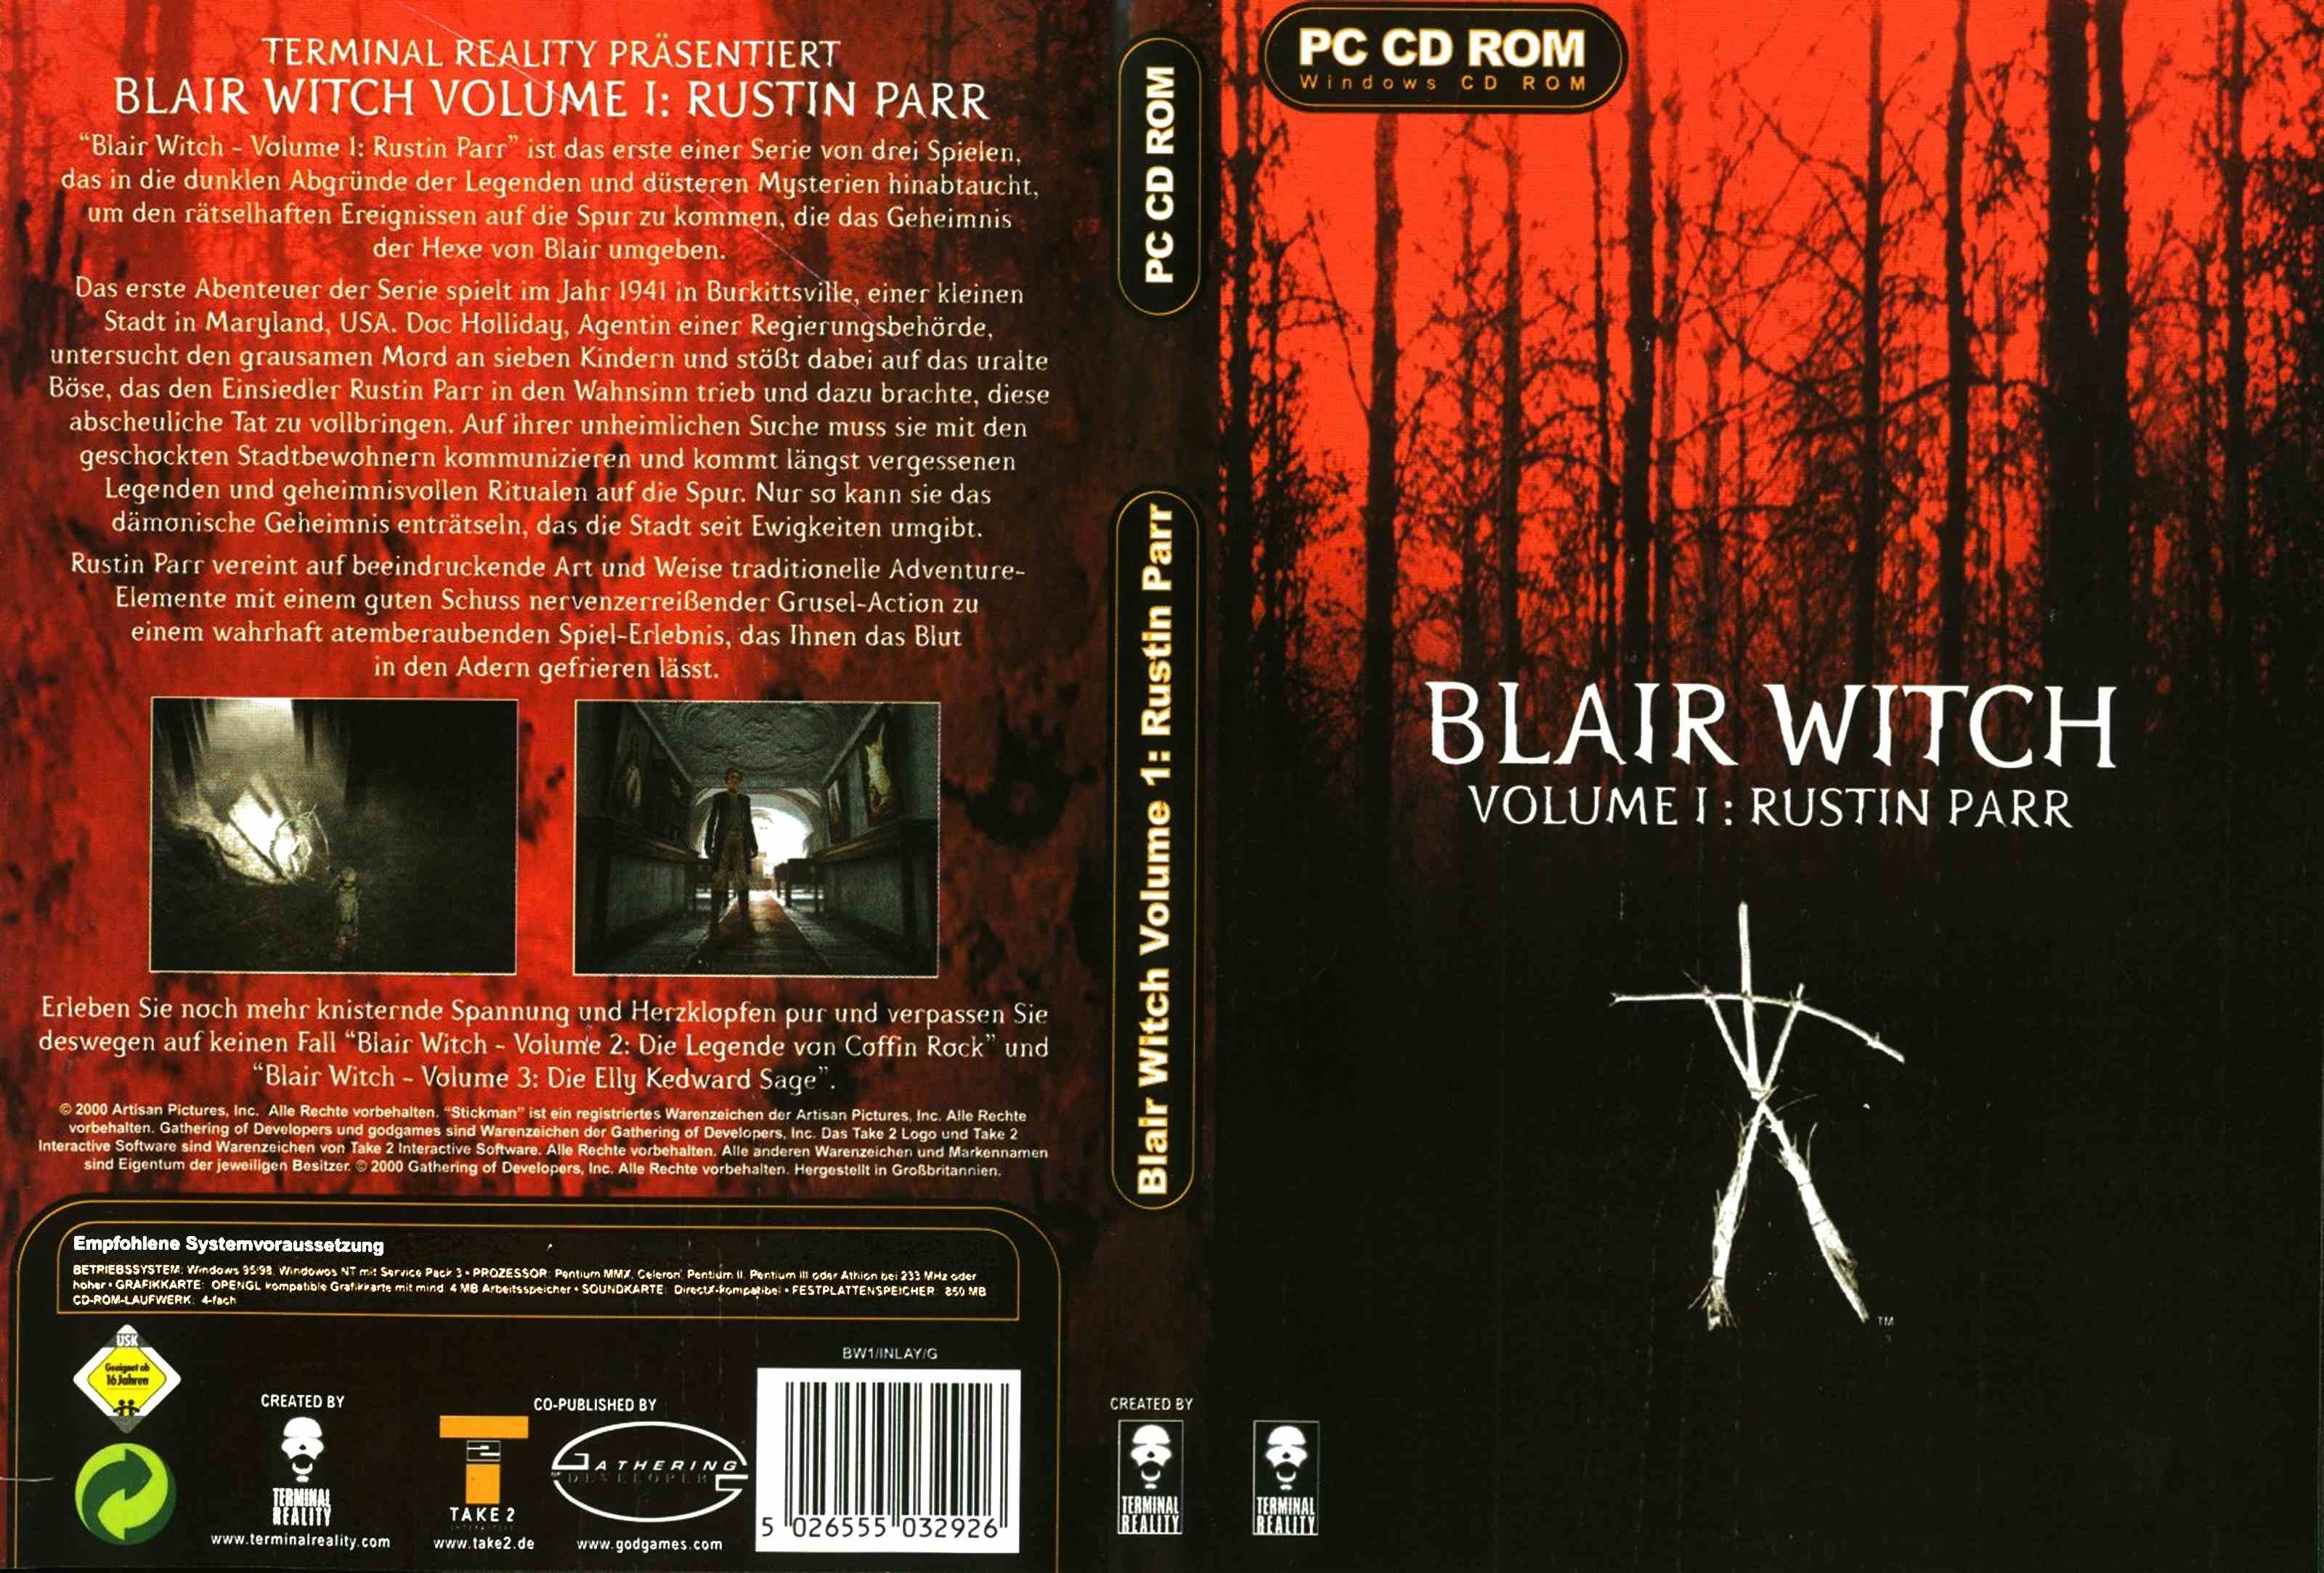 blair witch 1 rustin parr dvd | Playstation 2 Covers | Cover